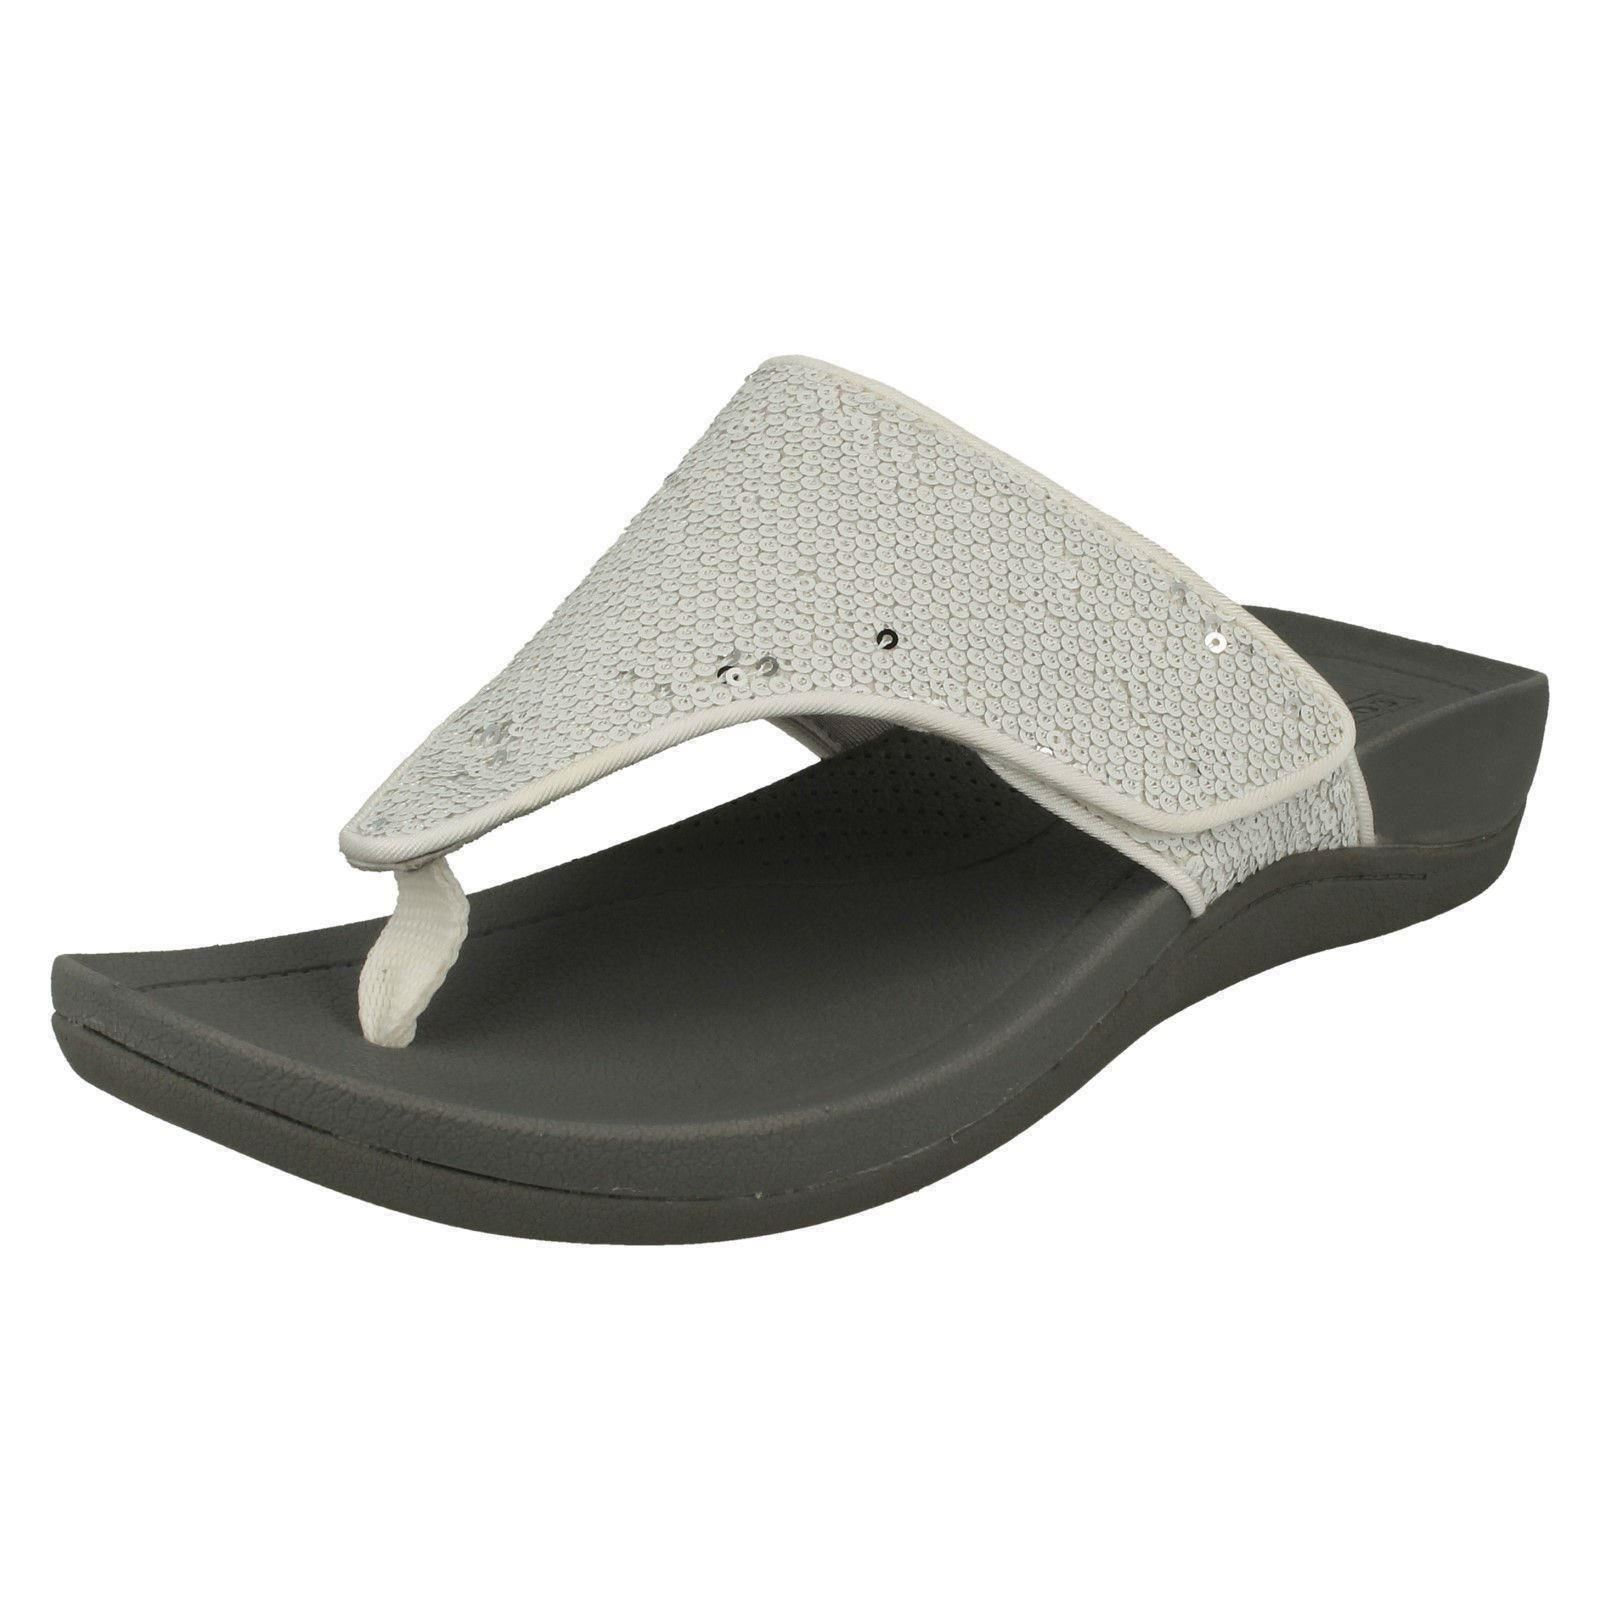 ef44ad4e9cf951 Ladies Clarks Flip Flops  Pical Lipson   Picture 2 of 10 ...